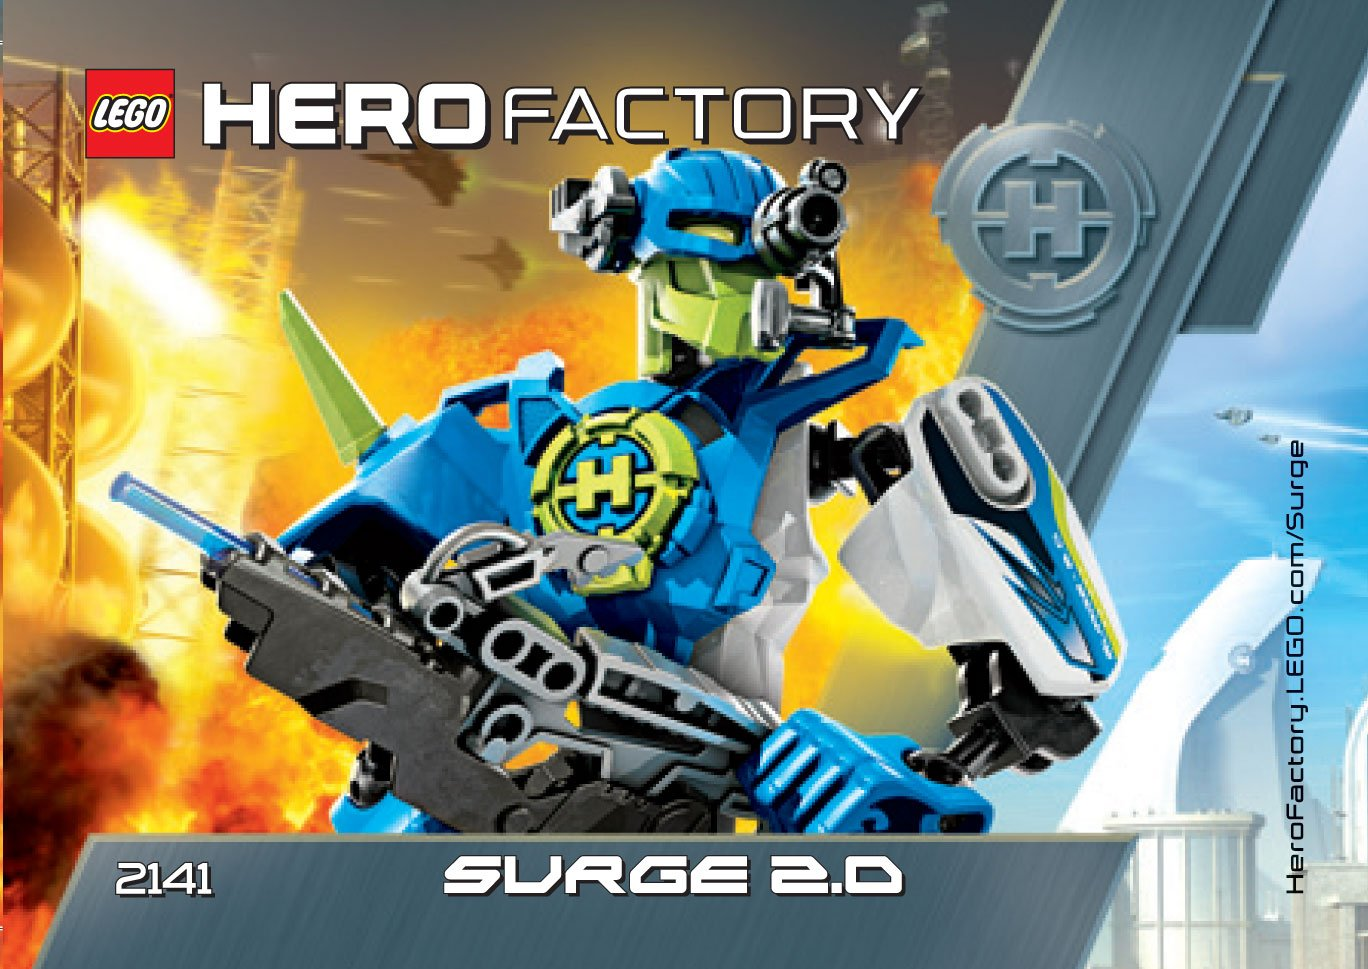 Amazon Lego Hero Factory 2141 Surge 20 Toys Games